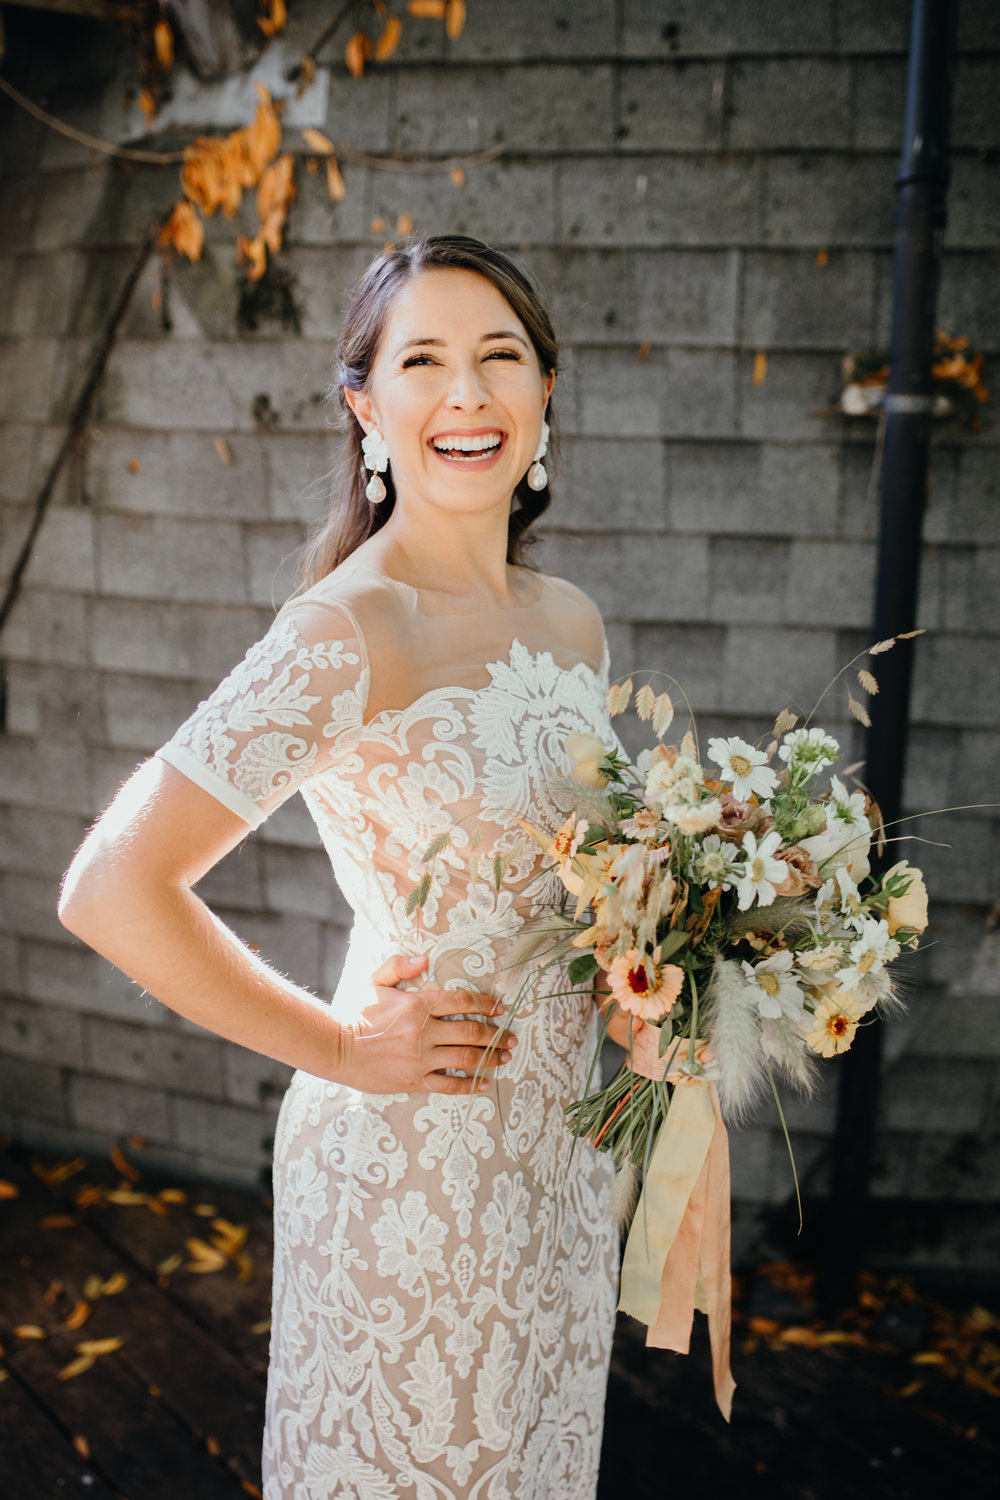 Aly_Oz_Farm_San_Francisco_Mendocino_Wedding_D+A_Bridal_hair_and_makeup_50.jpg